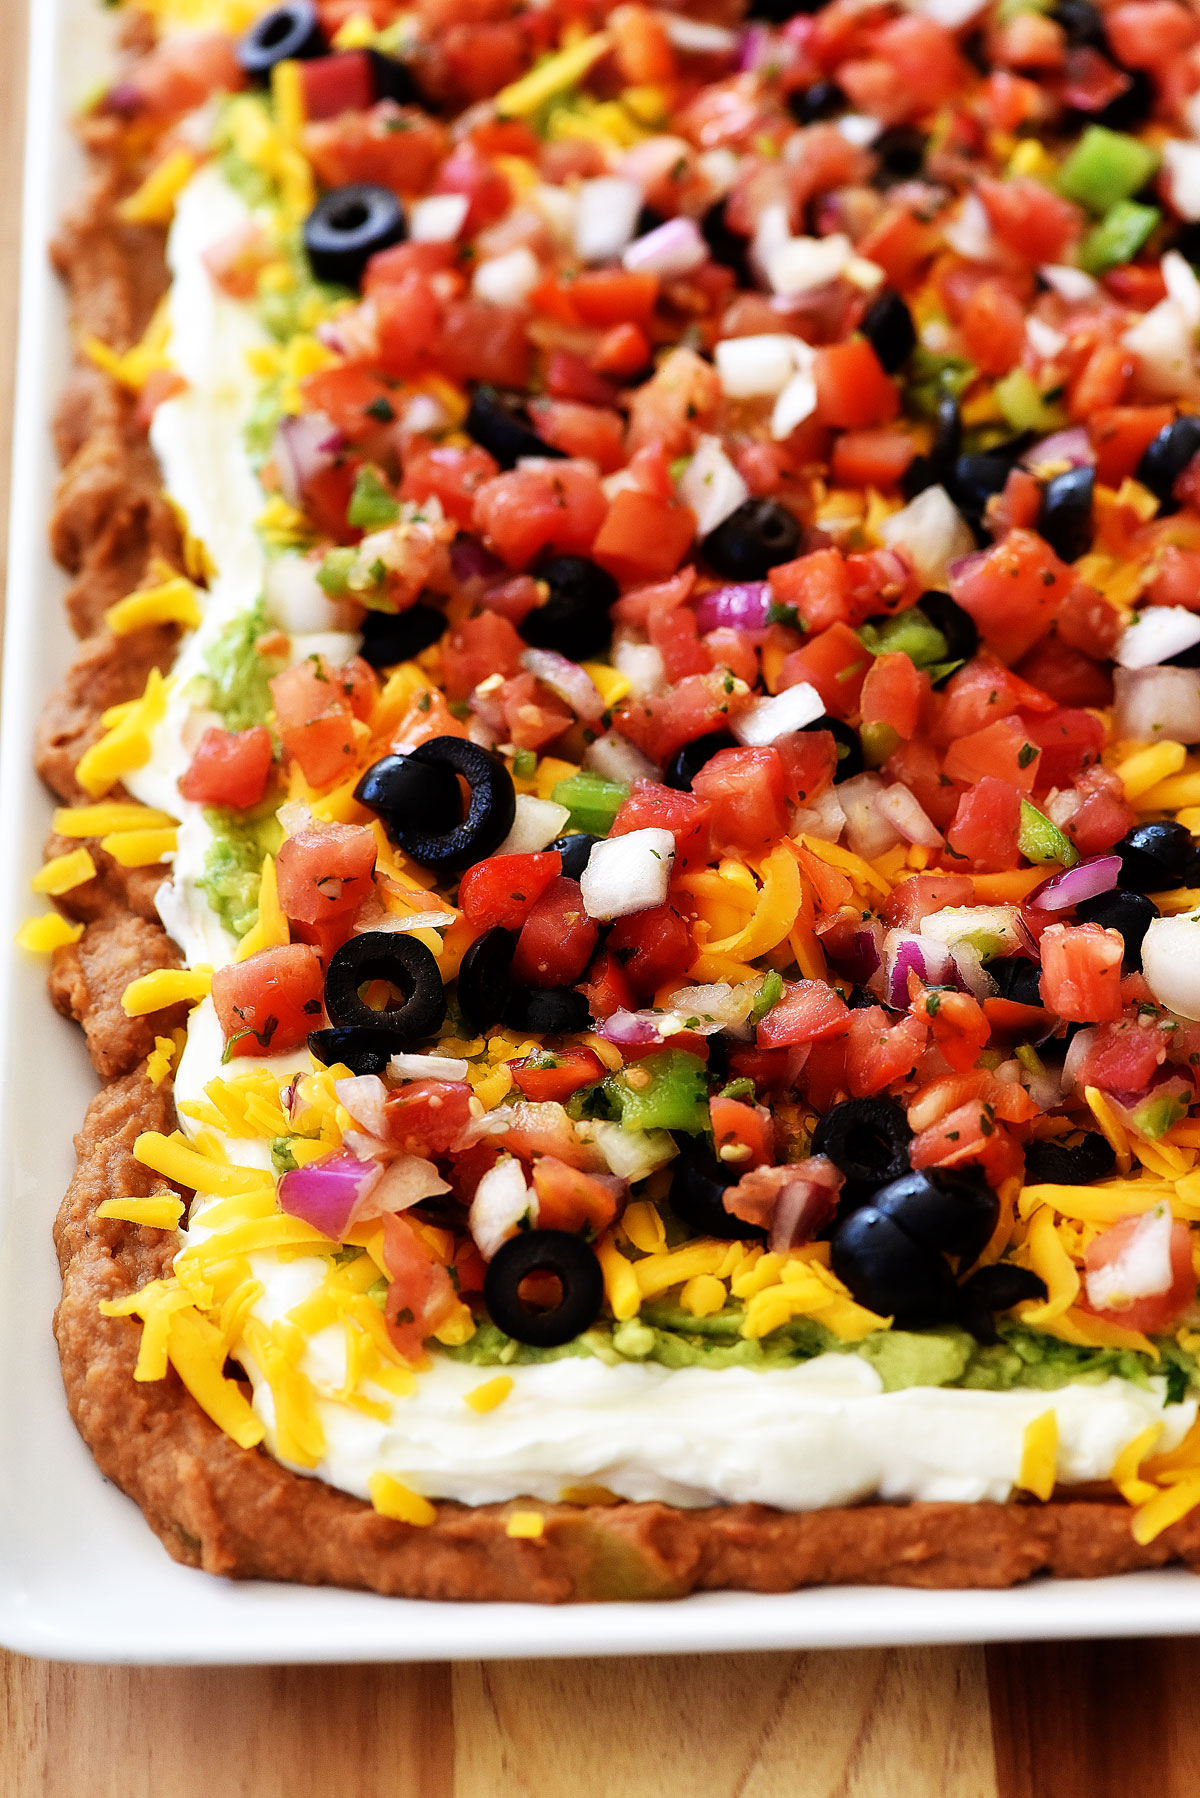 Mexican layer dip is a delicious dip with layers of beans, sour cream, guacamole and pico de gallo. Life-in-the-Lofthouse.com